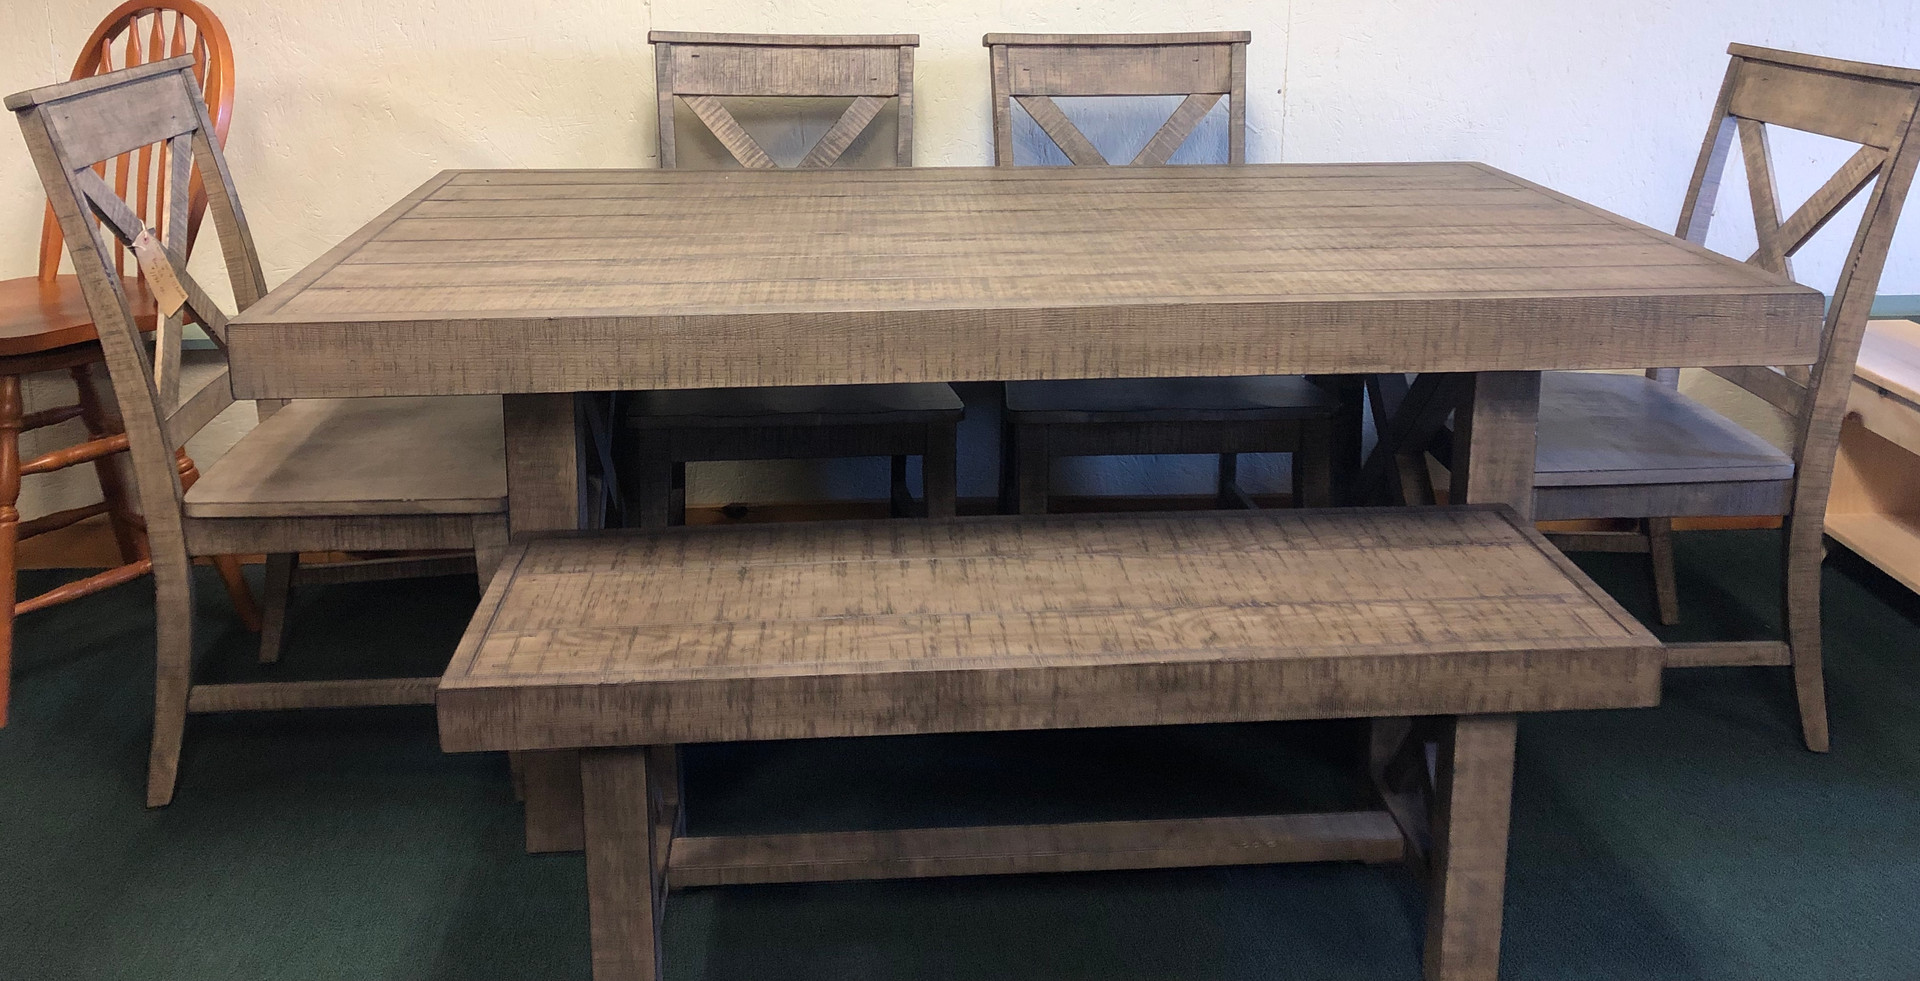 Rustic Oak Table with 4 Chairs/Bench